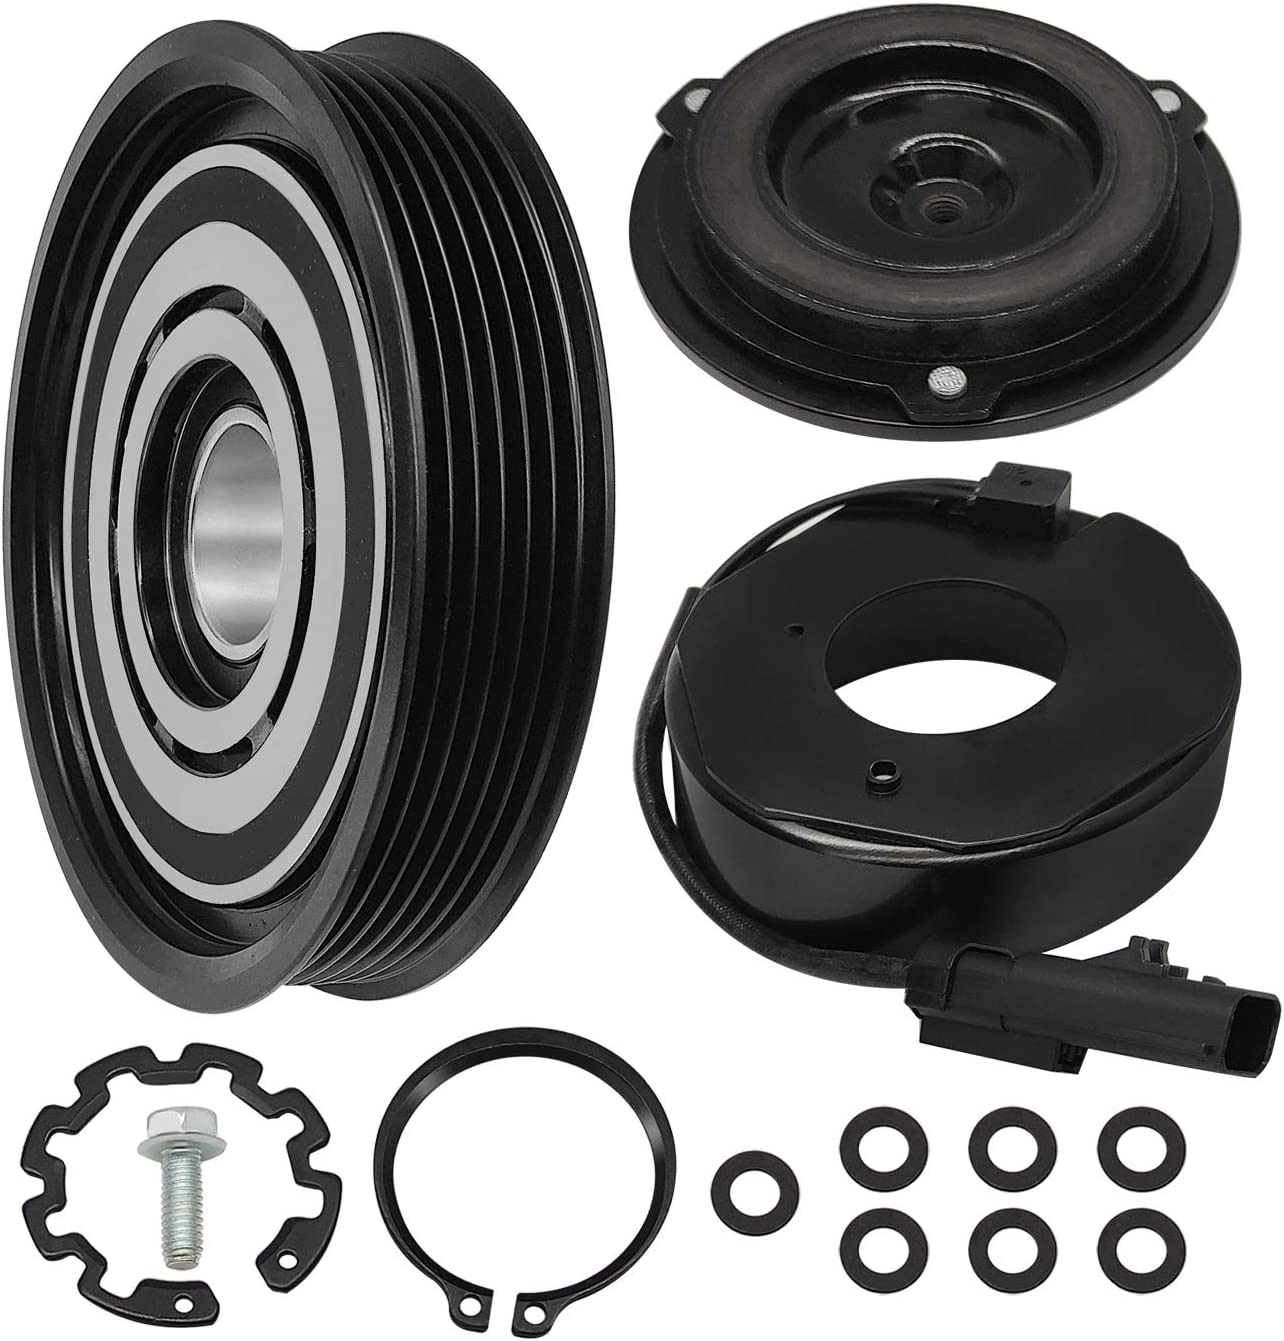 Saihisday AC 2021 autumn and Max 41% OFF winter new Compressor Assembly Clutch Kit